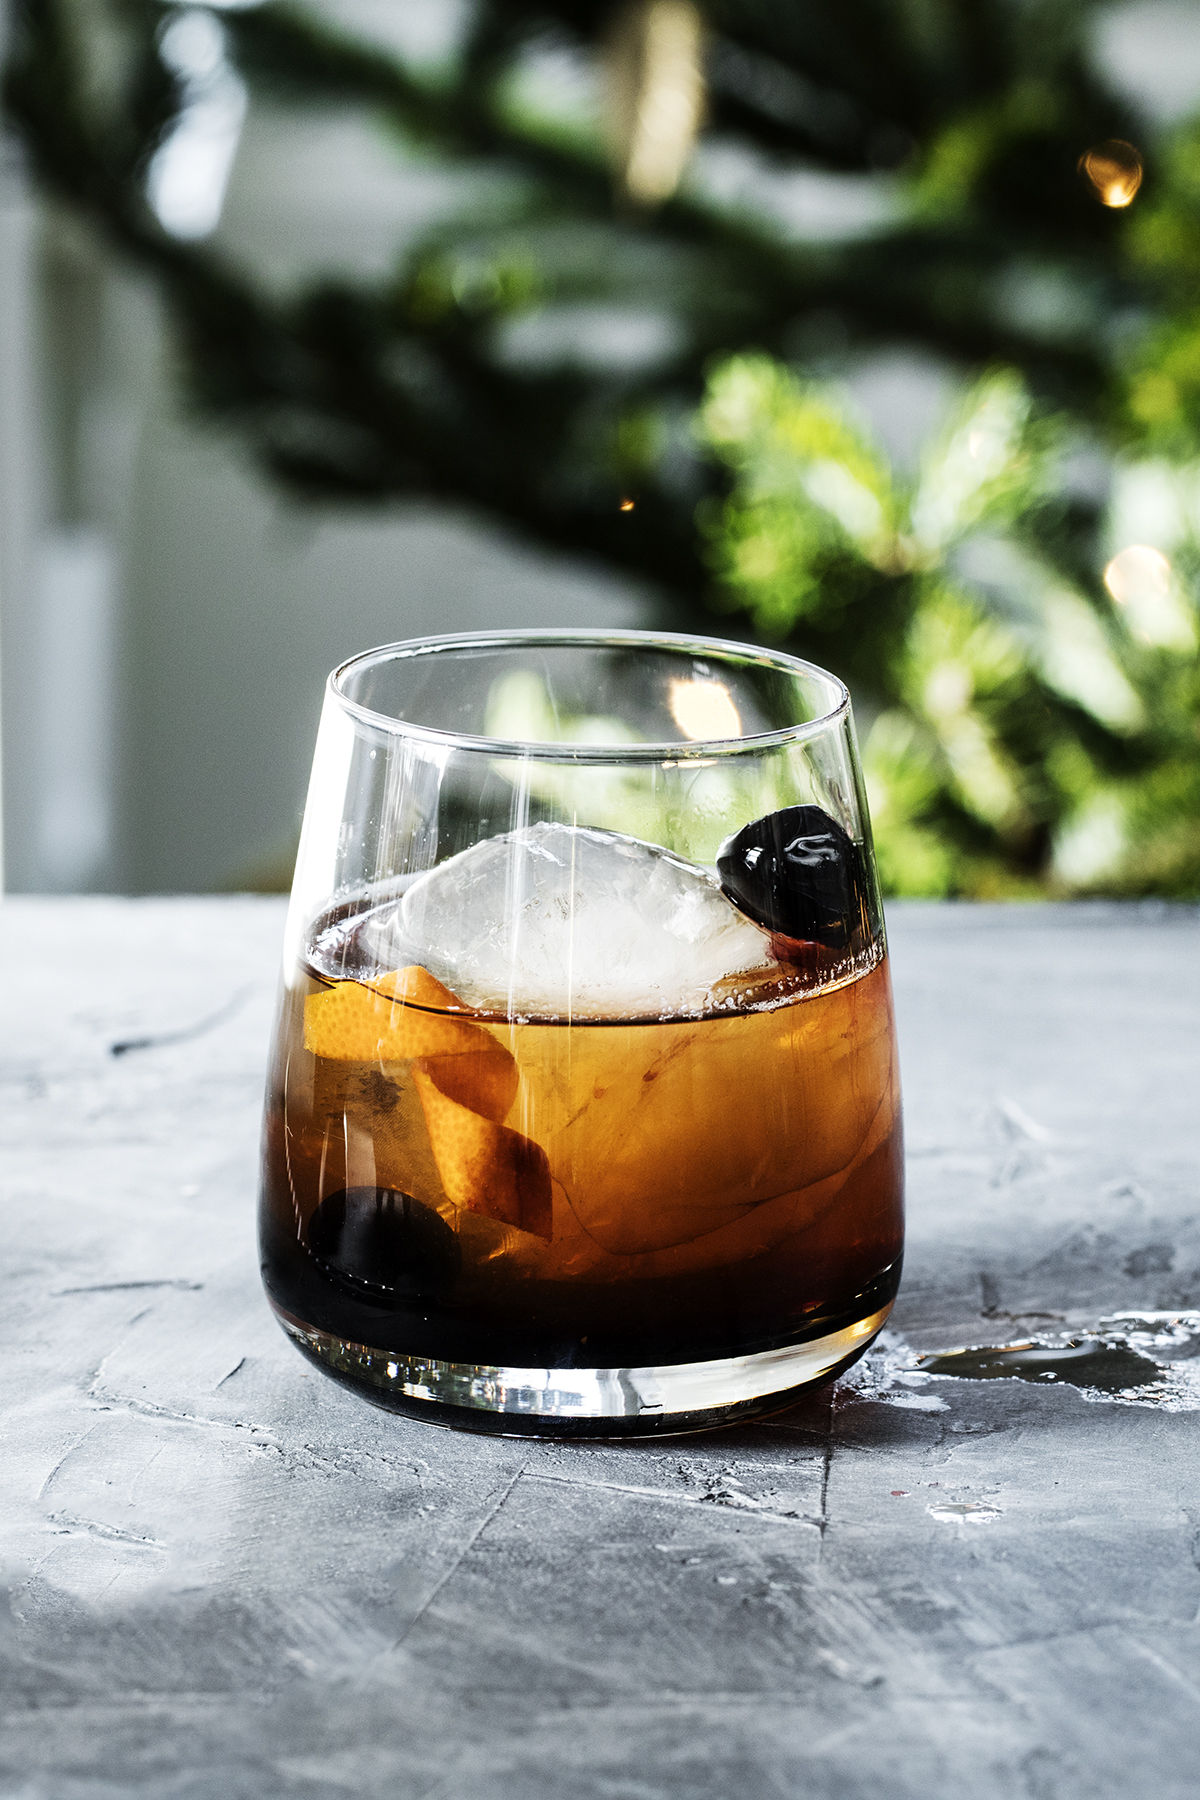 Recipe: Spiced Old Fashioned